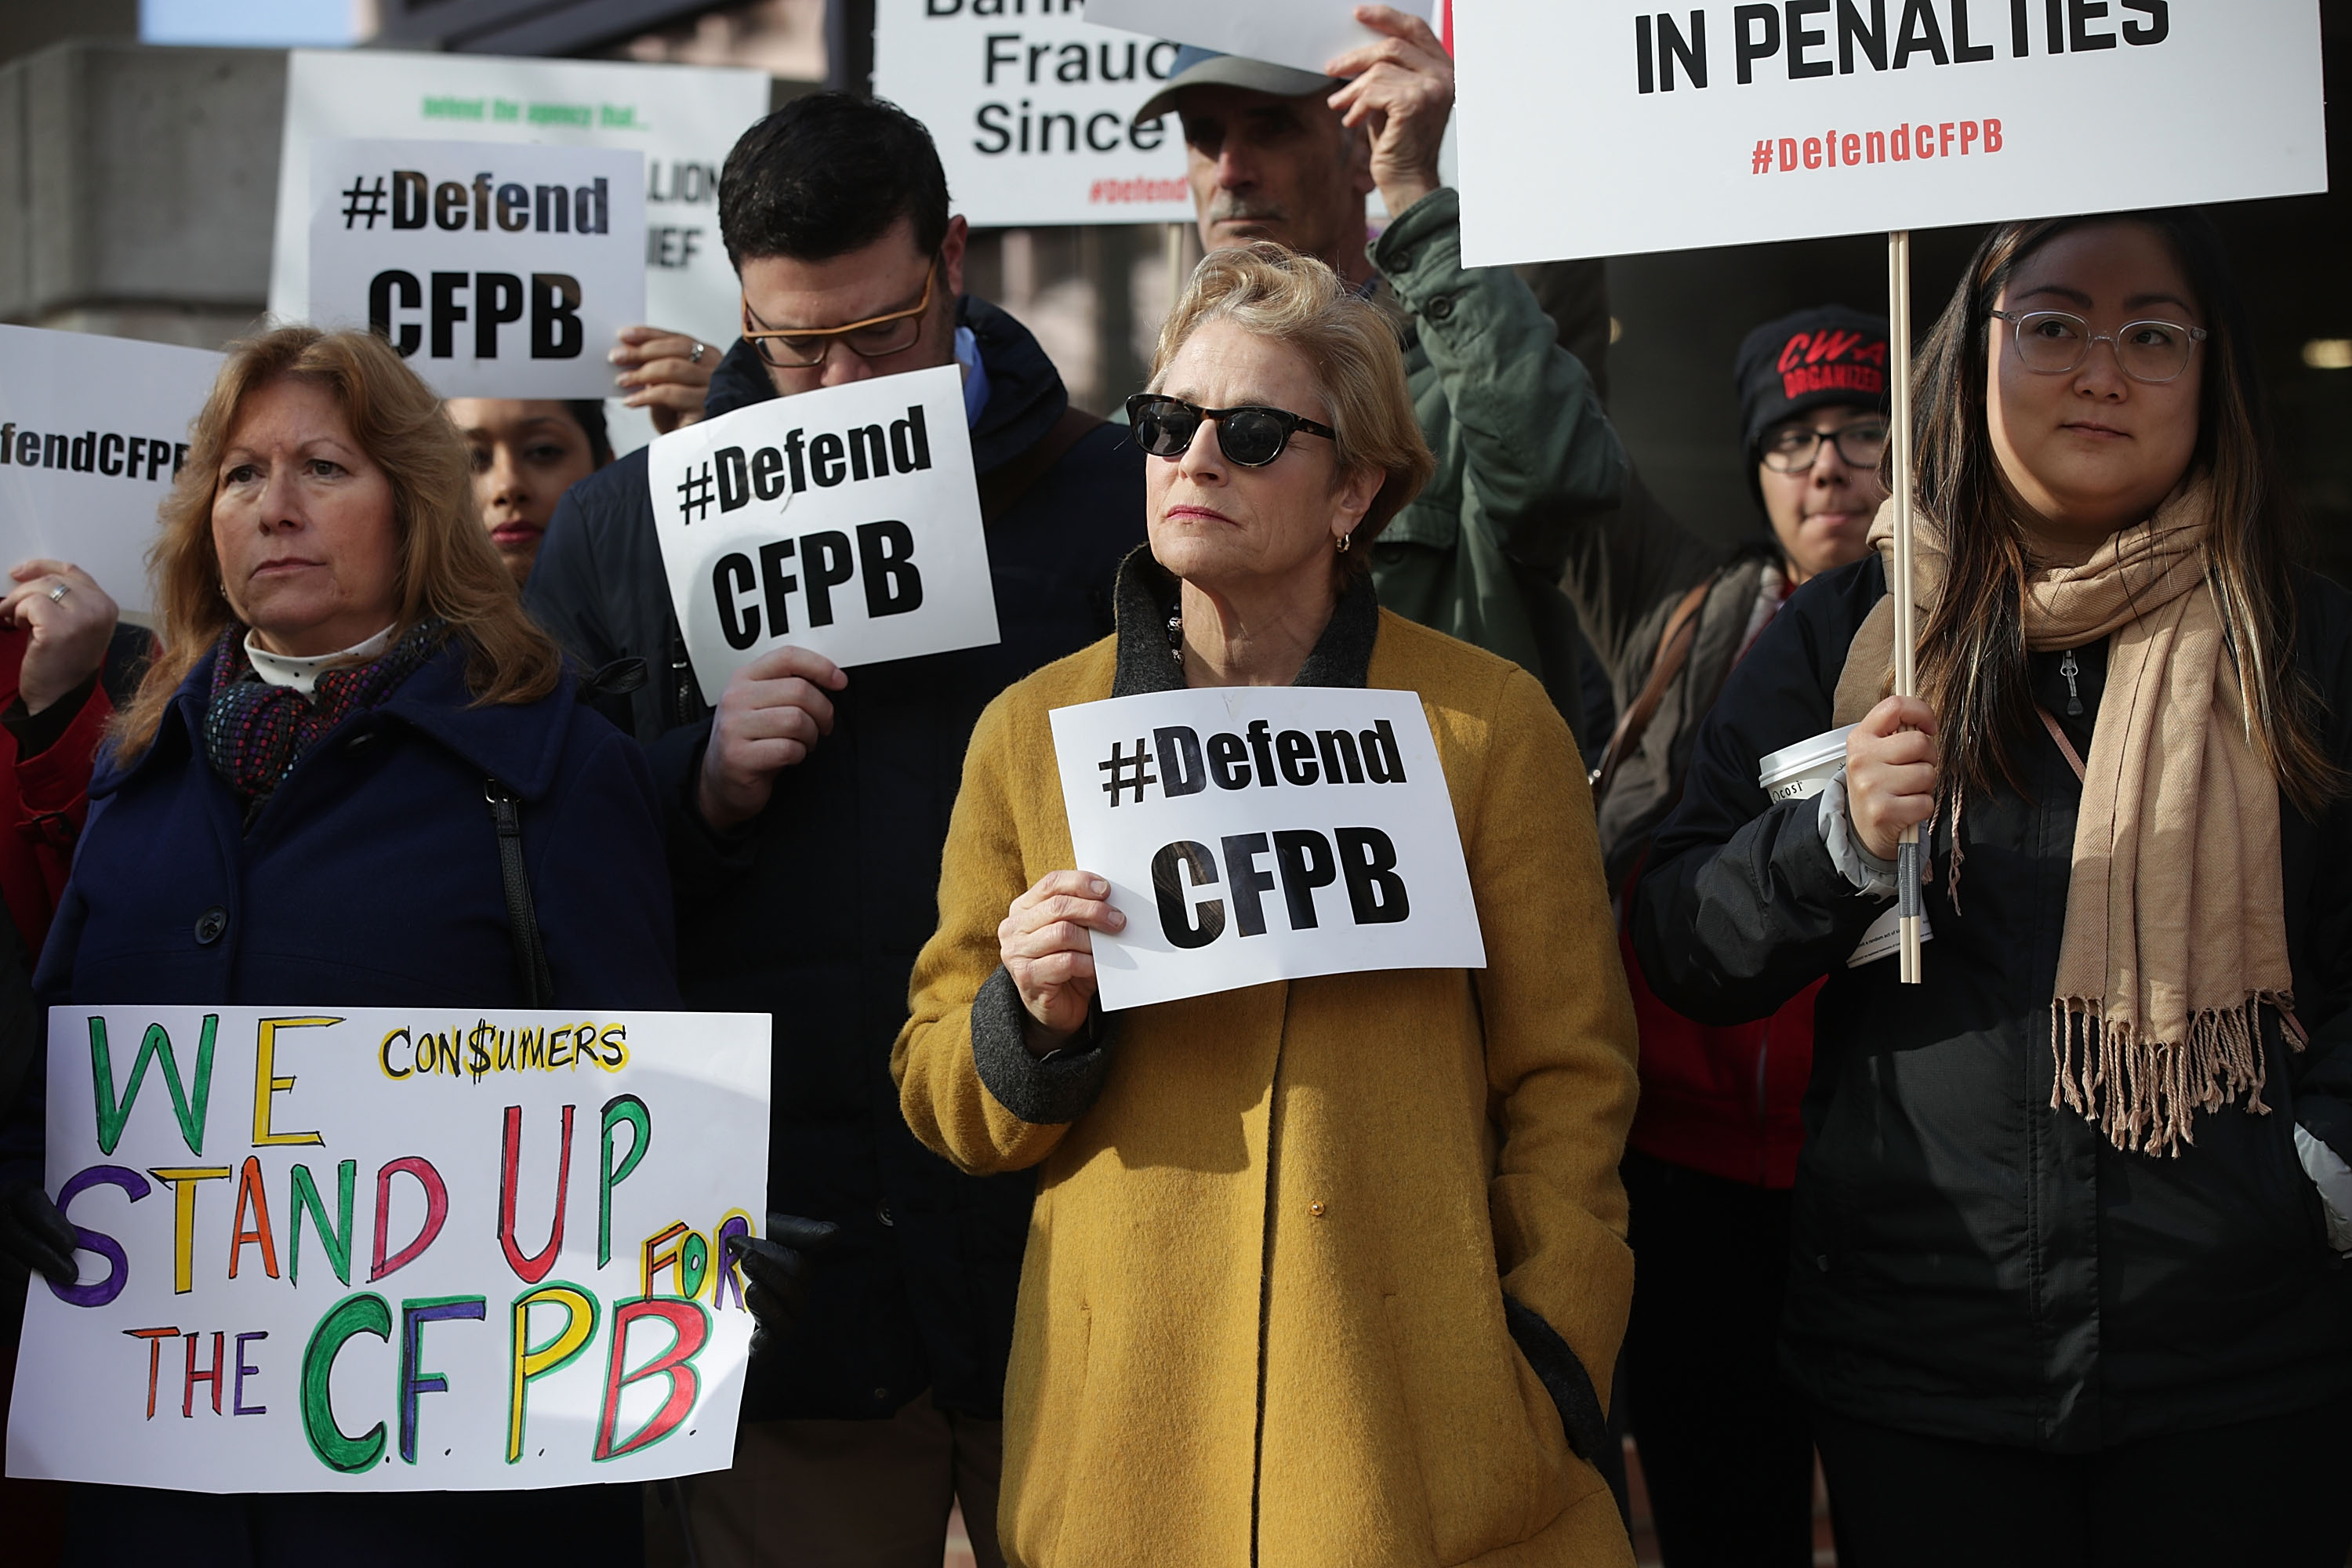 Supporters of the Consumer Financial Protection Bureau (CFPB) hold signs as they gather in front of the agency November 27, 2017 in Washington, DC.